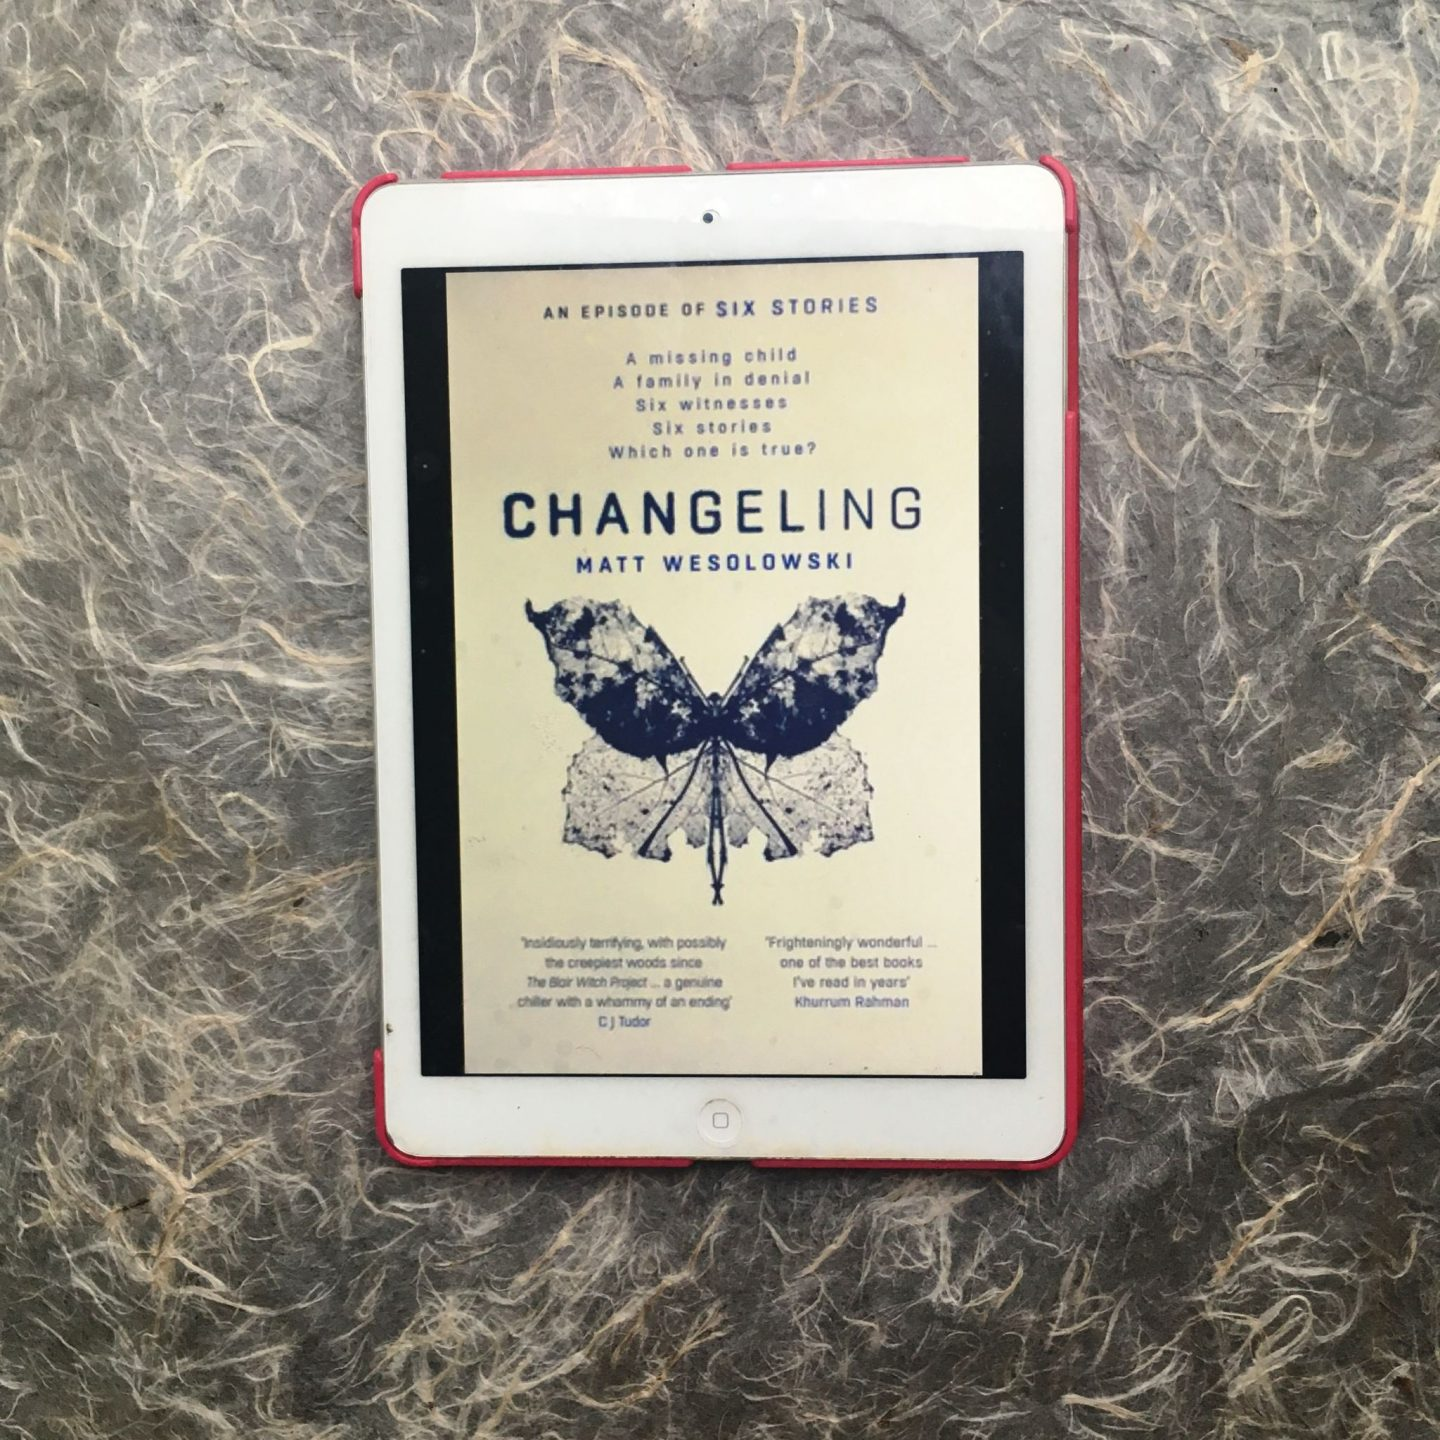 The cover of Changeling by Matt Wesolowski